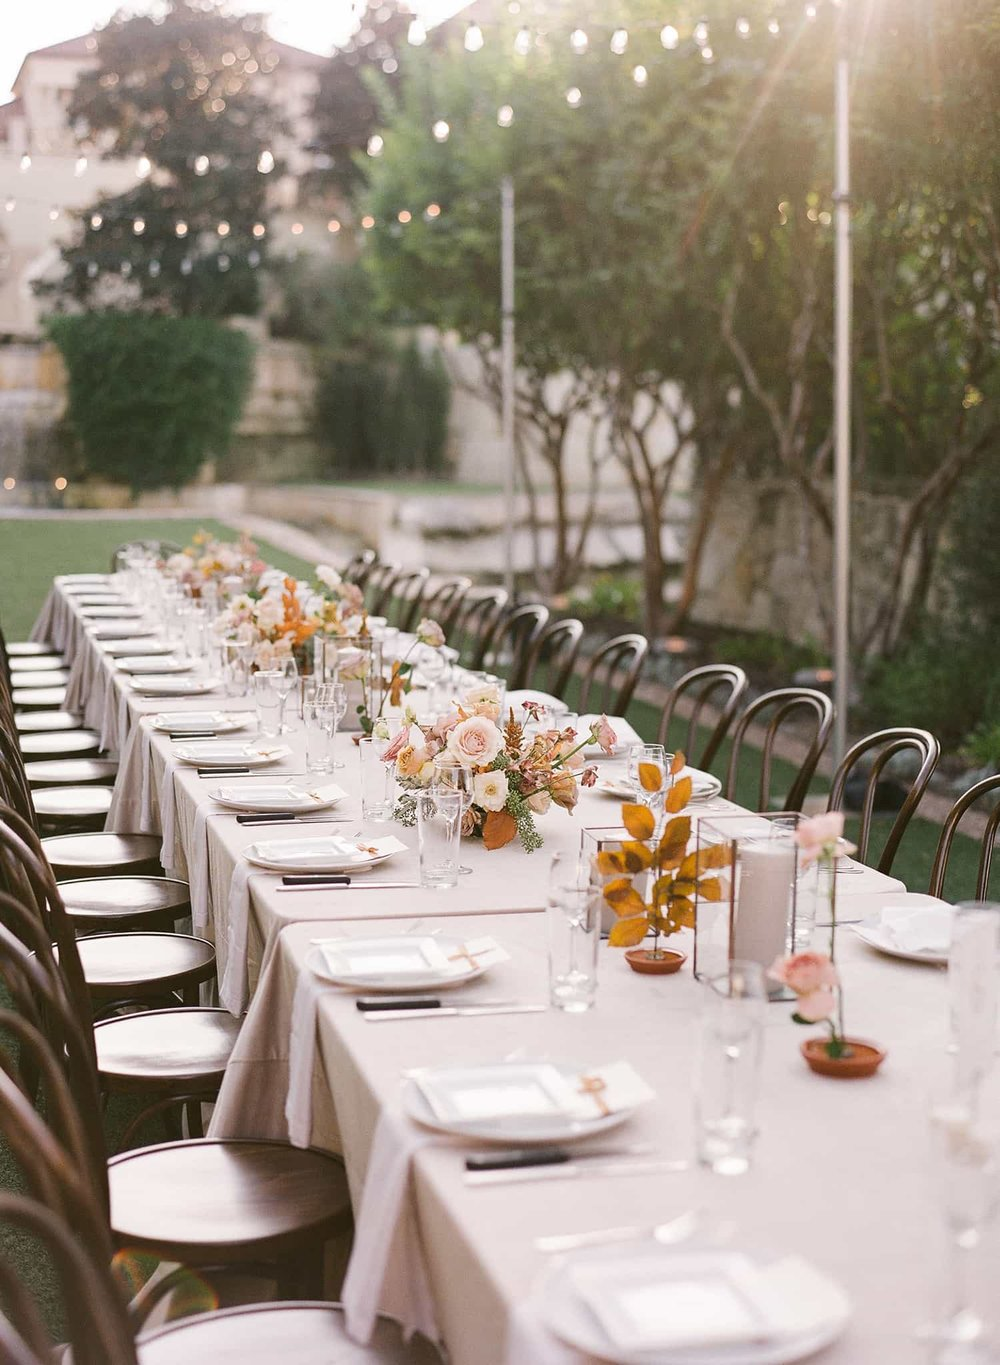 Flowers for wedding reception by Color Theory Collective